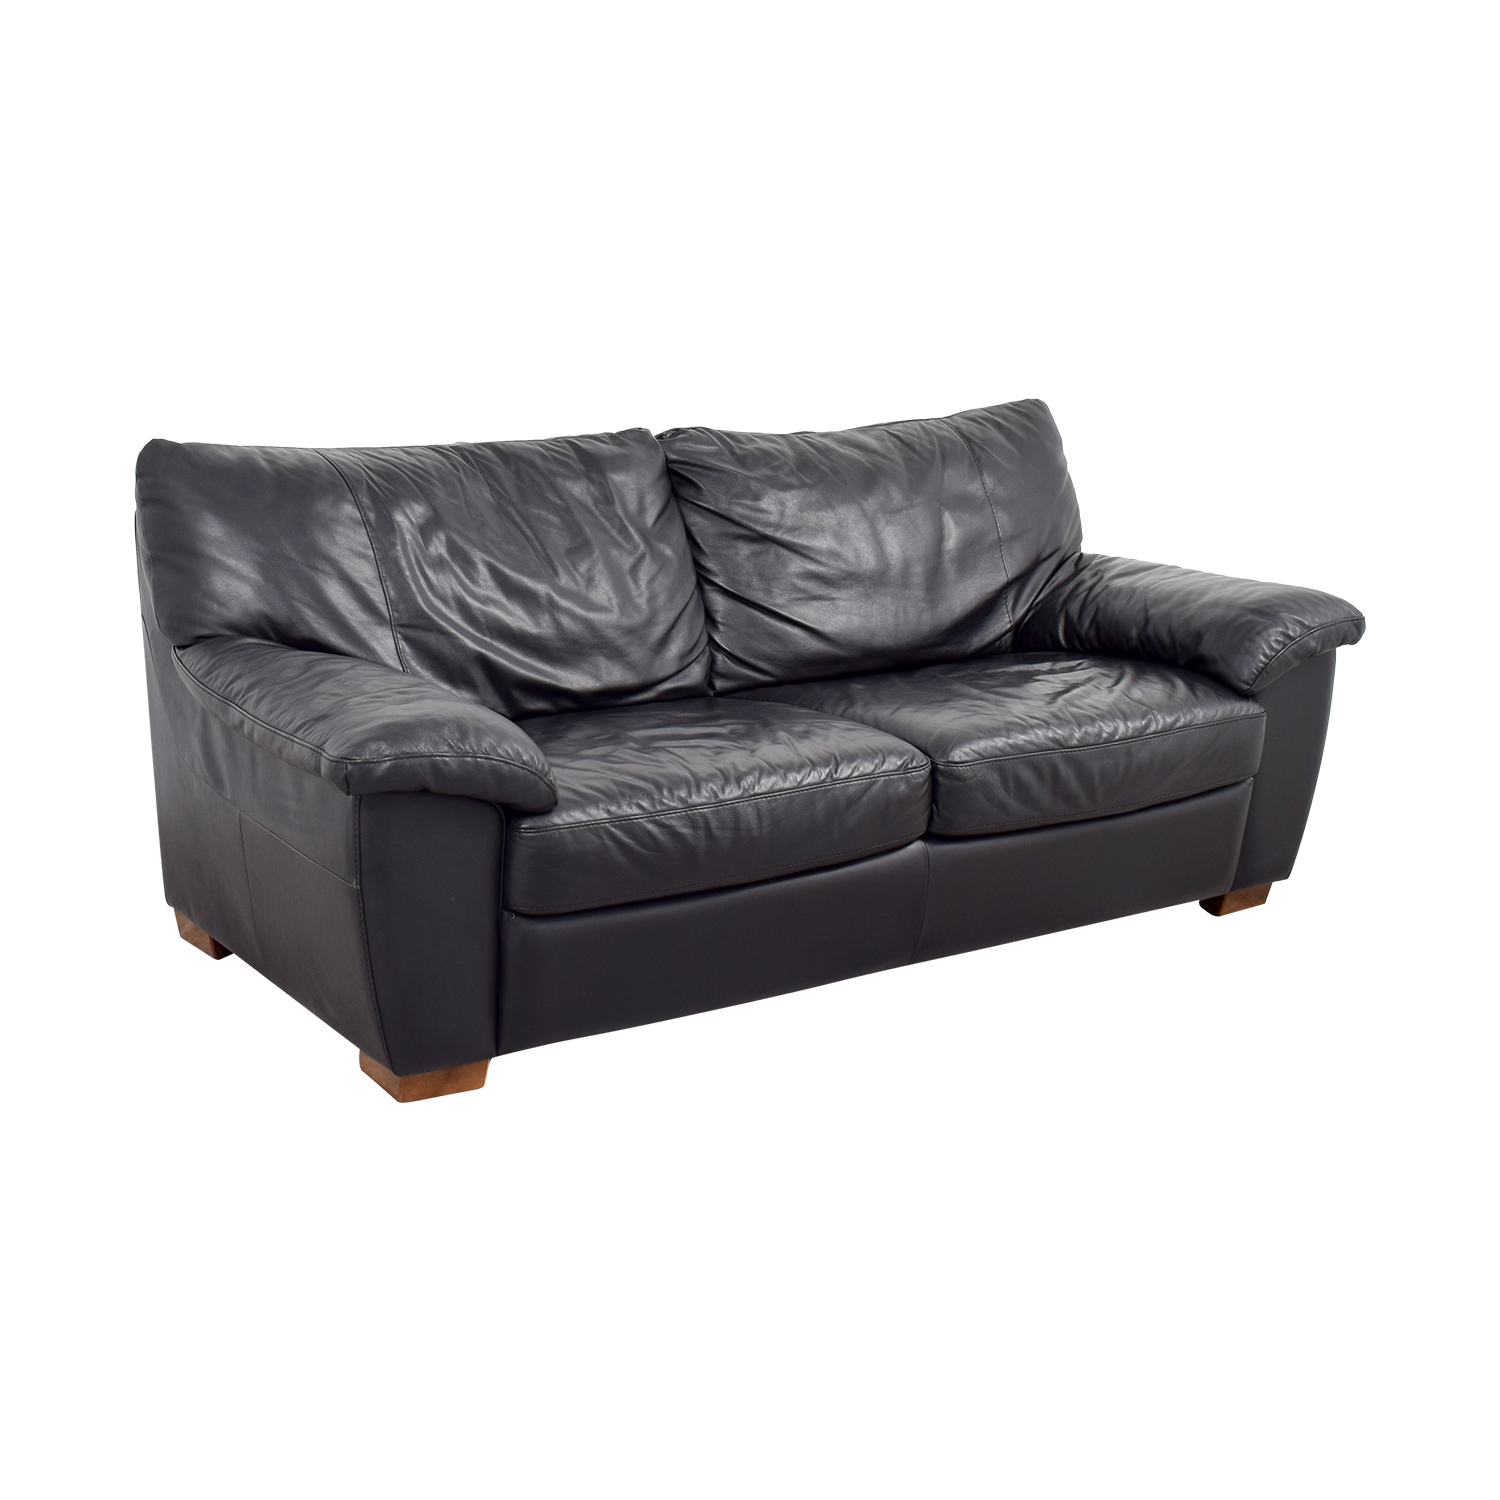 IKEA IKEA Black Leather Two-Cushion Couch for sale